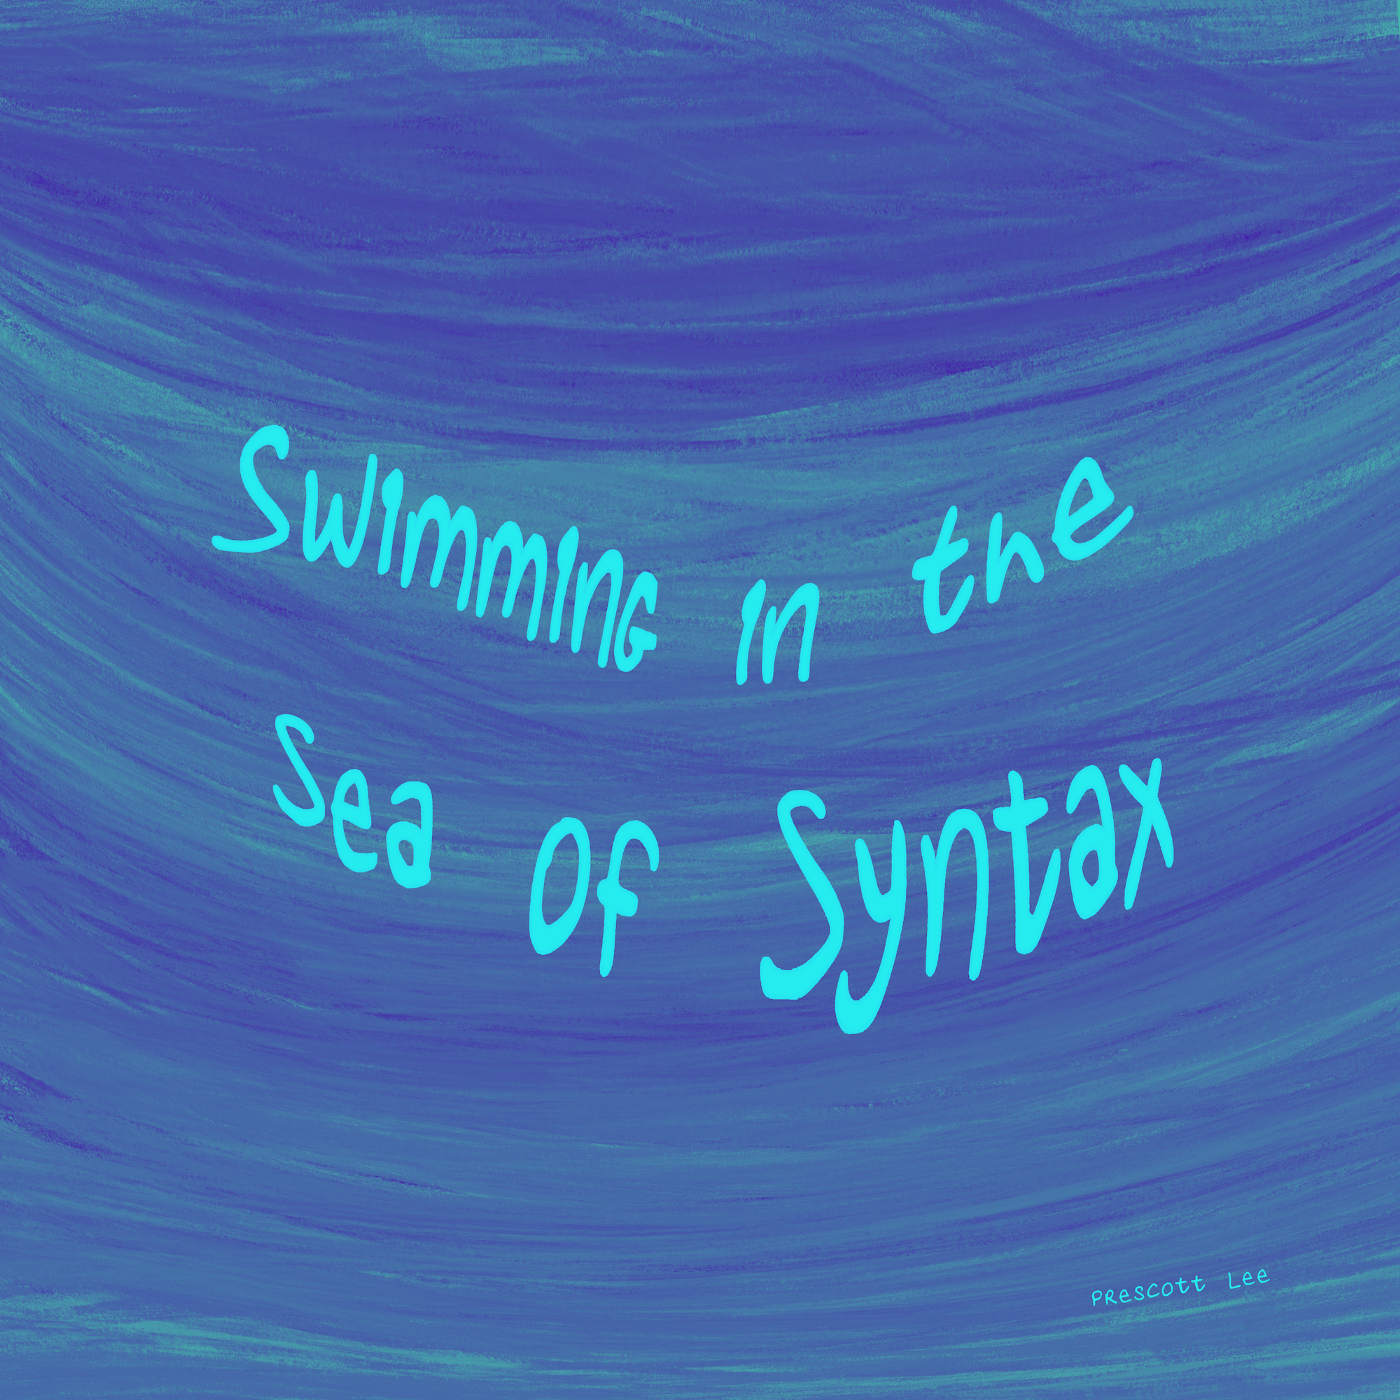 """Swimming in the sea of syntax"" over a wave-like background"